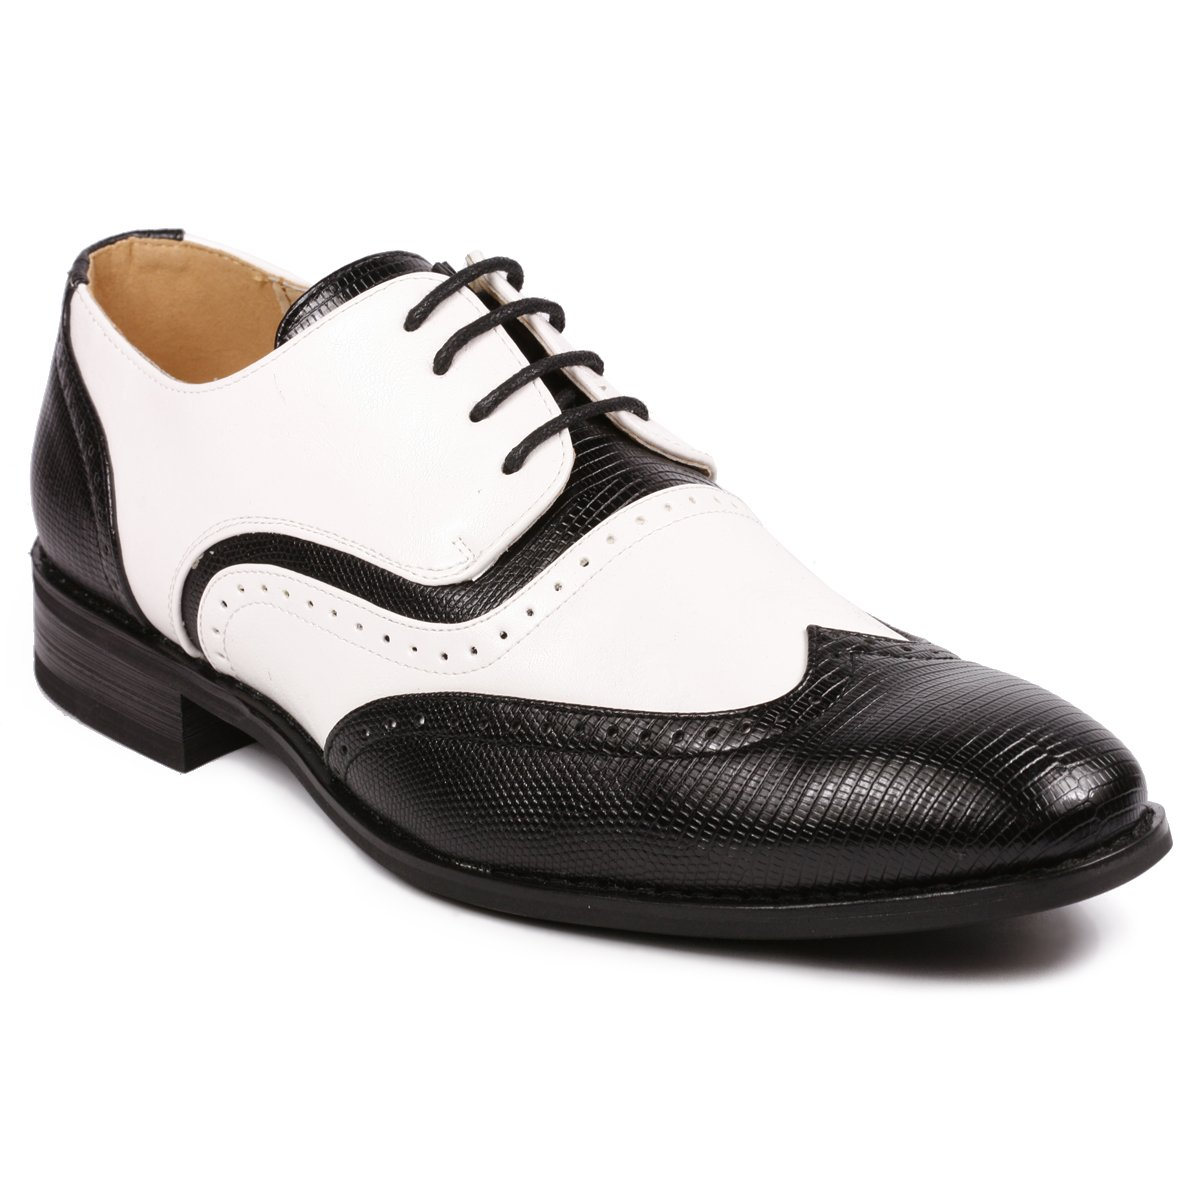 5 Types of Great Gatsby Mens Shoes Metrocharm MC113 Mens Wing Tip Perforated Lace Up Oxford Dress Shoes $39.99 AT vintagedancer.com